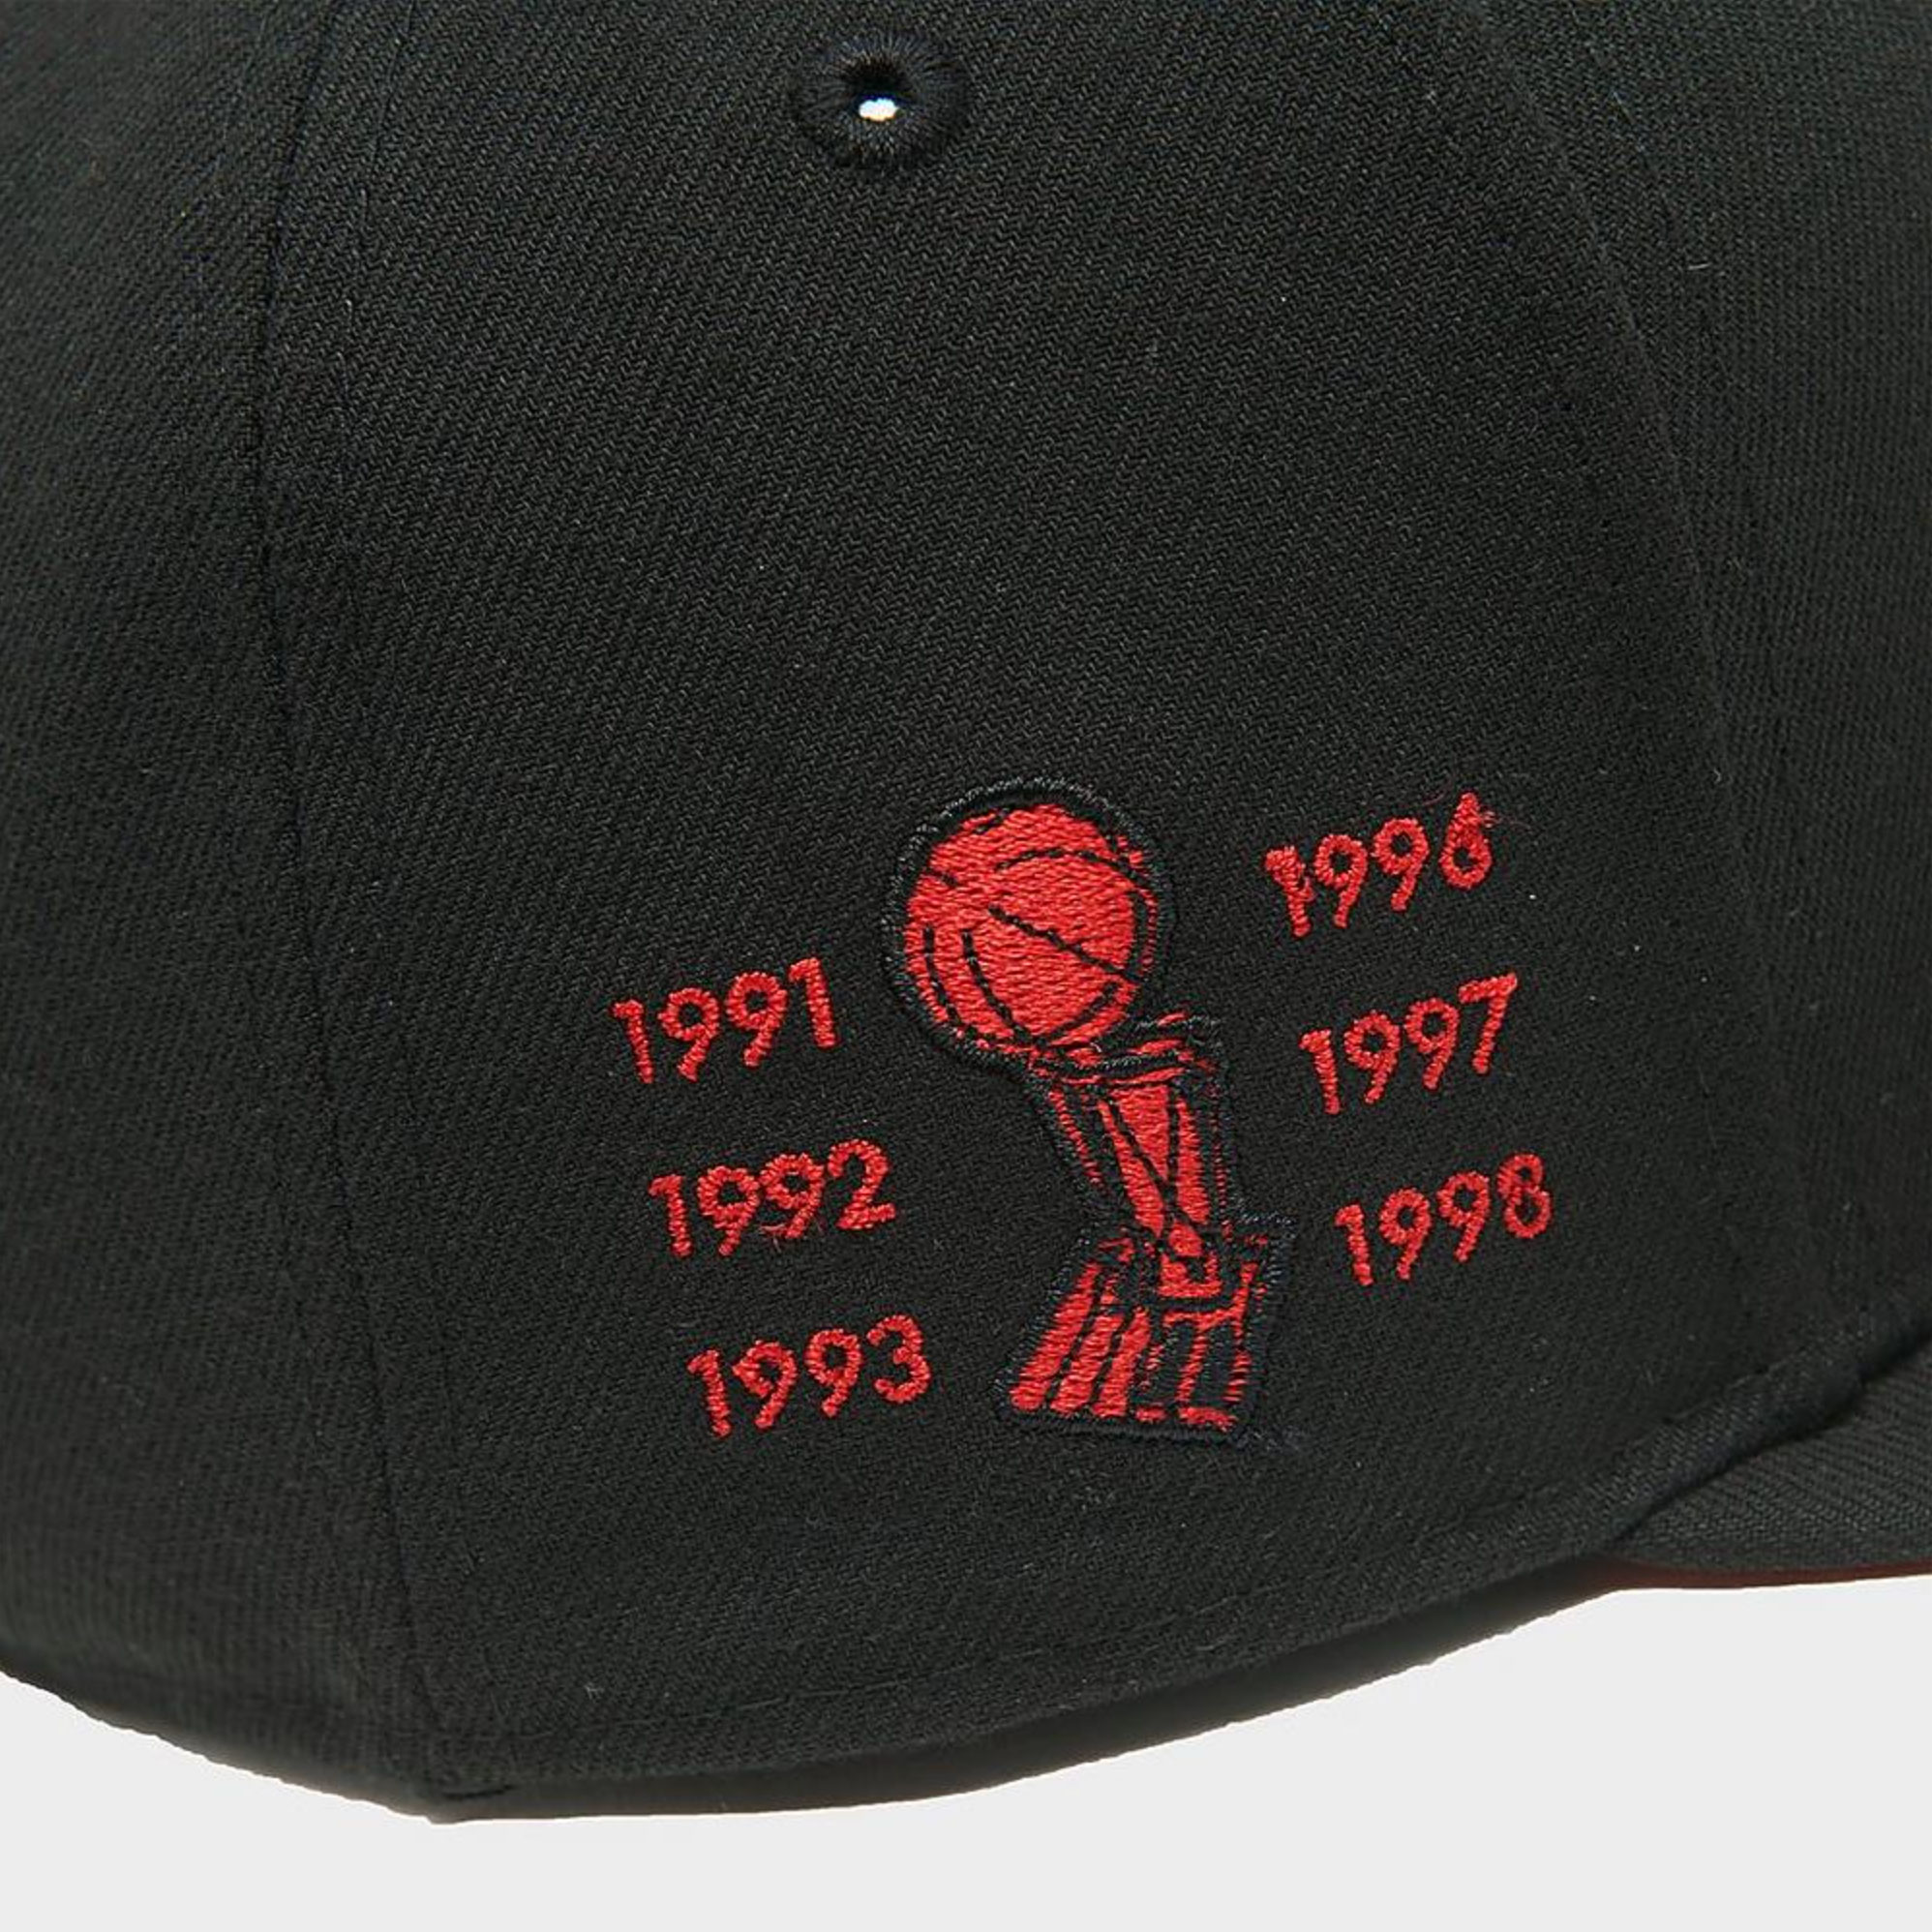 jordan-12-reverse-flu-game-new-era-chicago-bulls-bred-hat-2